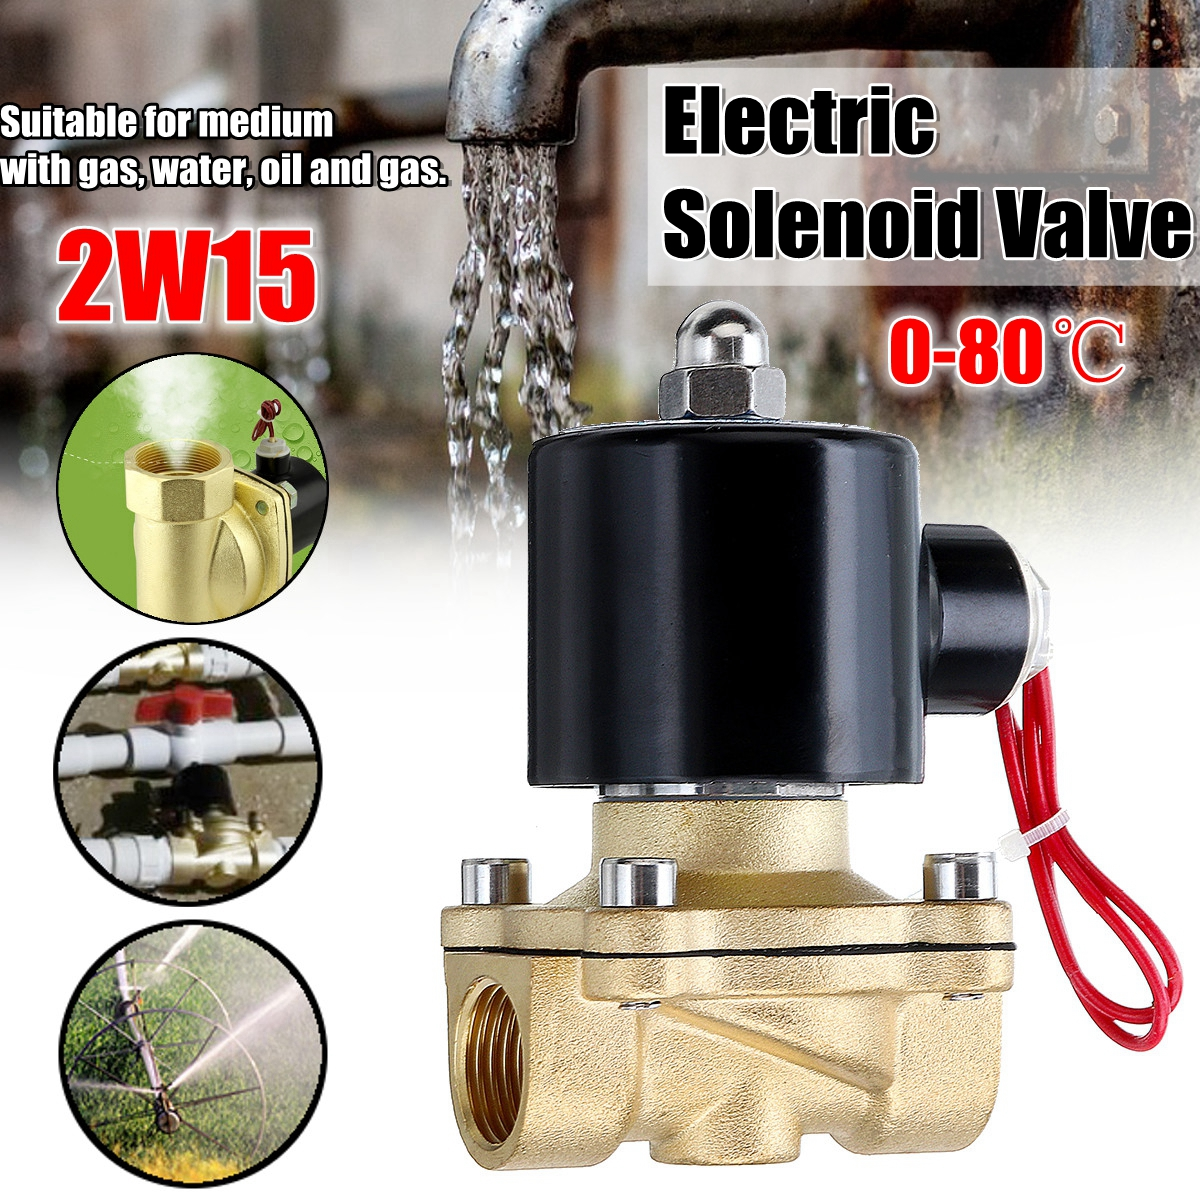 1/2 Inch AC220V Electric Solenoid Valve Normally Open Diaphragm Brass Valve for Water Air Gas brass electric solenoid valve 2w 200 20 3 4 inch npt for air water valve 110v nc